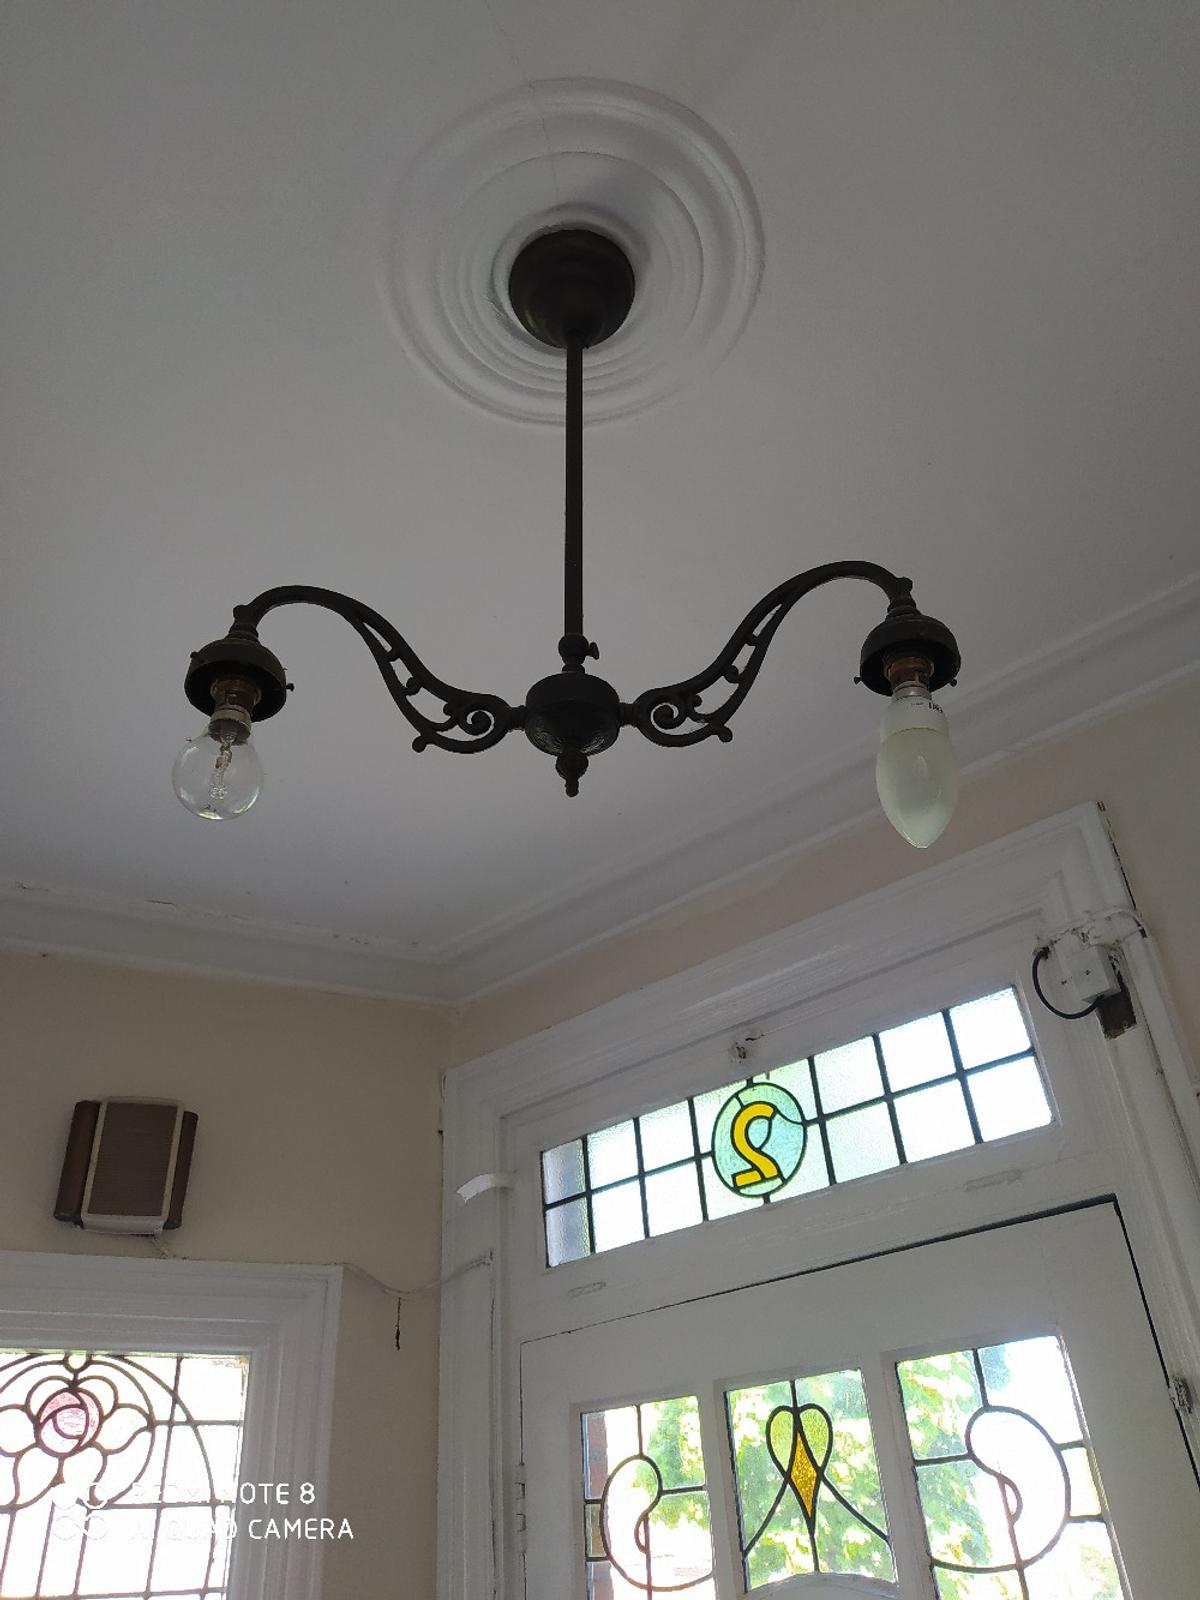 we have four beautiful, black chandeliers for sale. they look great, but don't go with our new Colour scheme. £20 each, but open to a bundle price. happy to answer any questions.